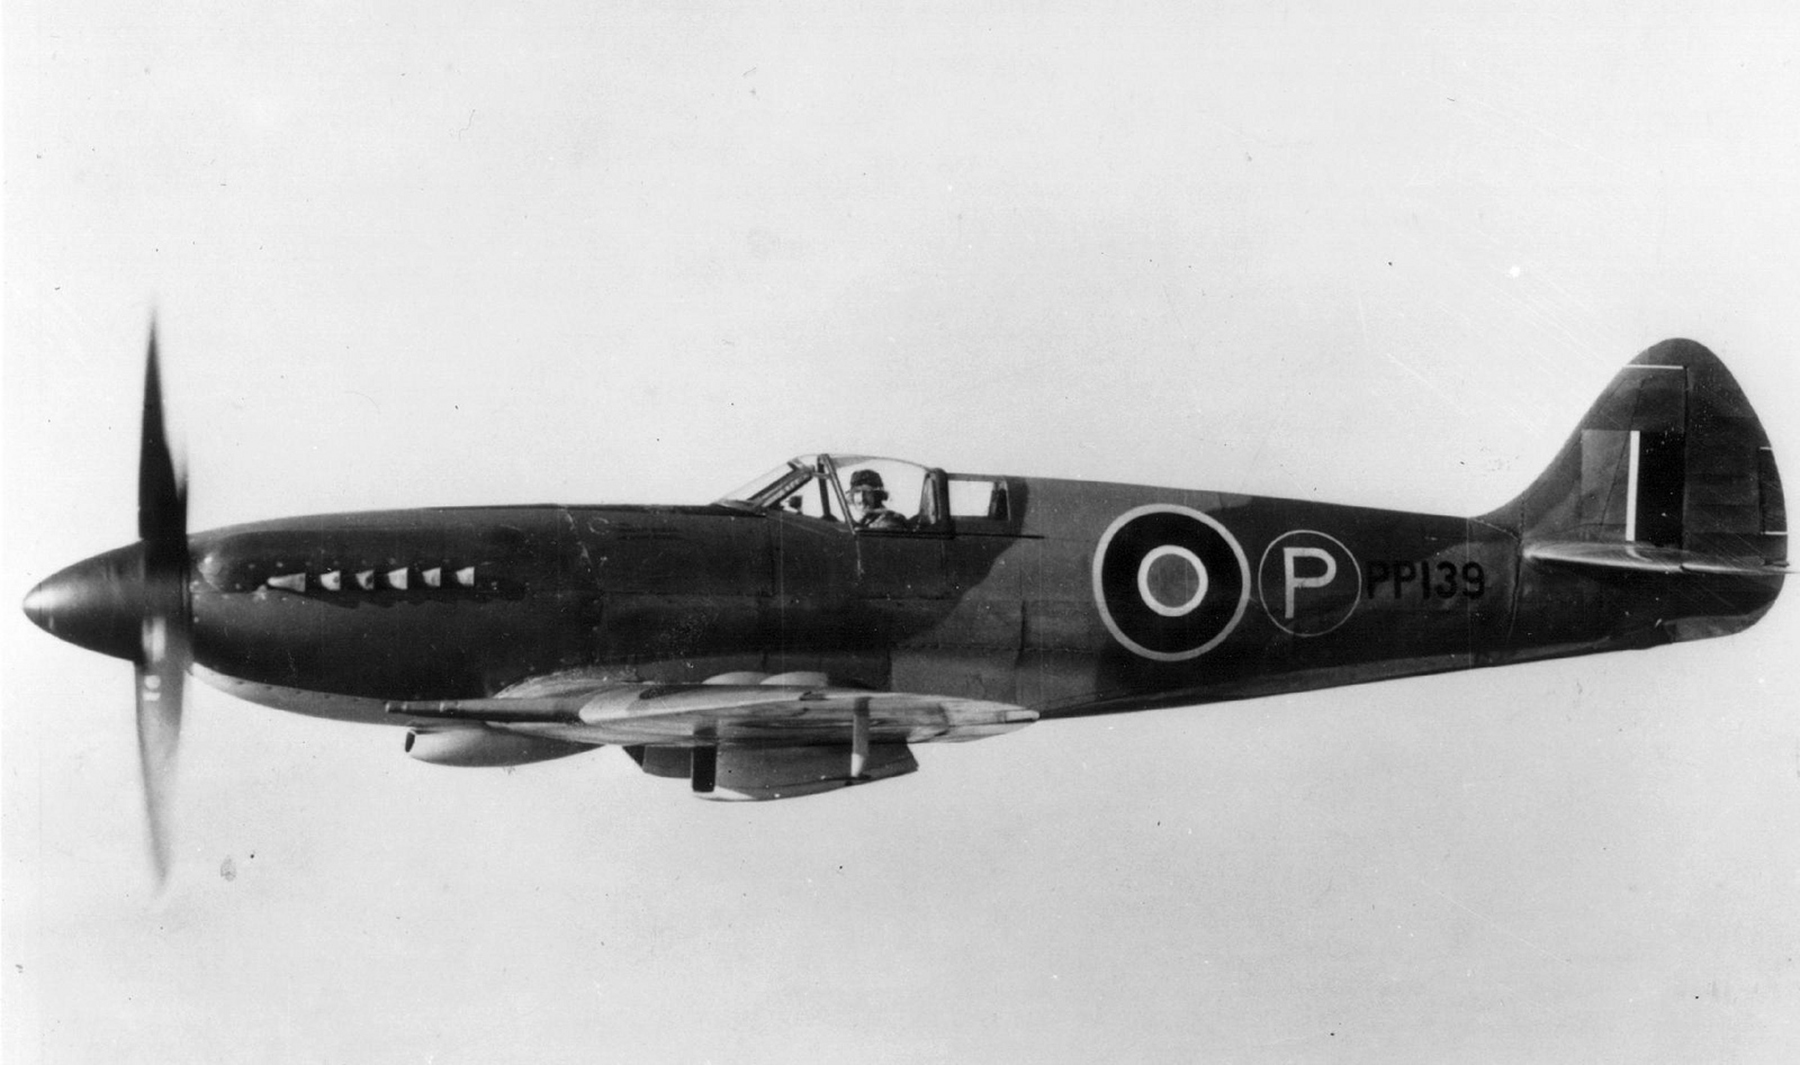 Spitfire 21 Prototype PP139 during tests over England 01